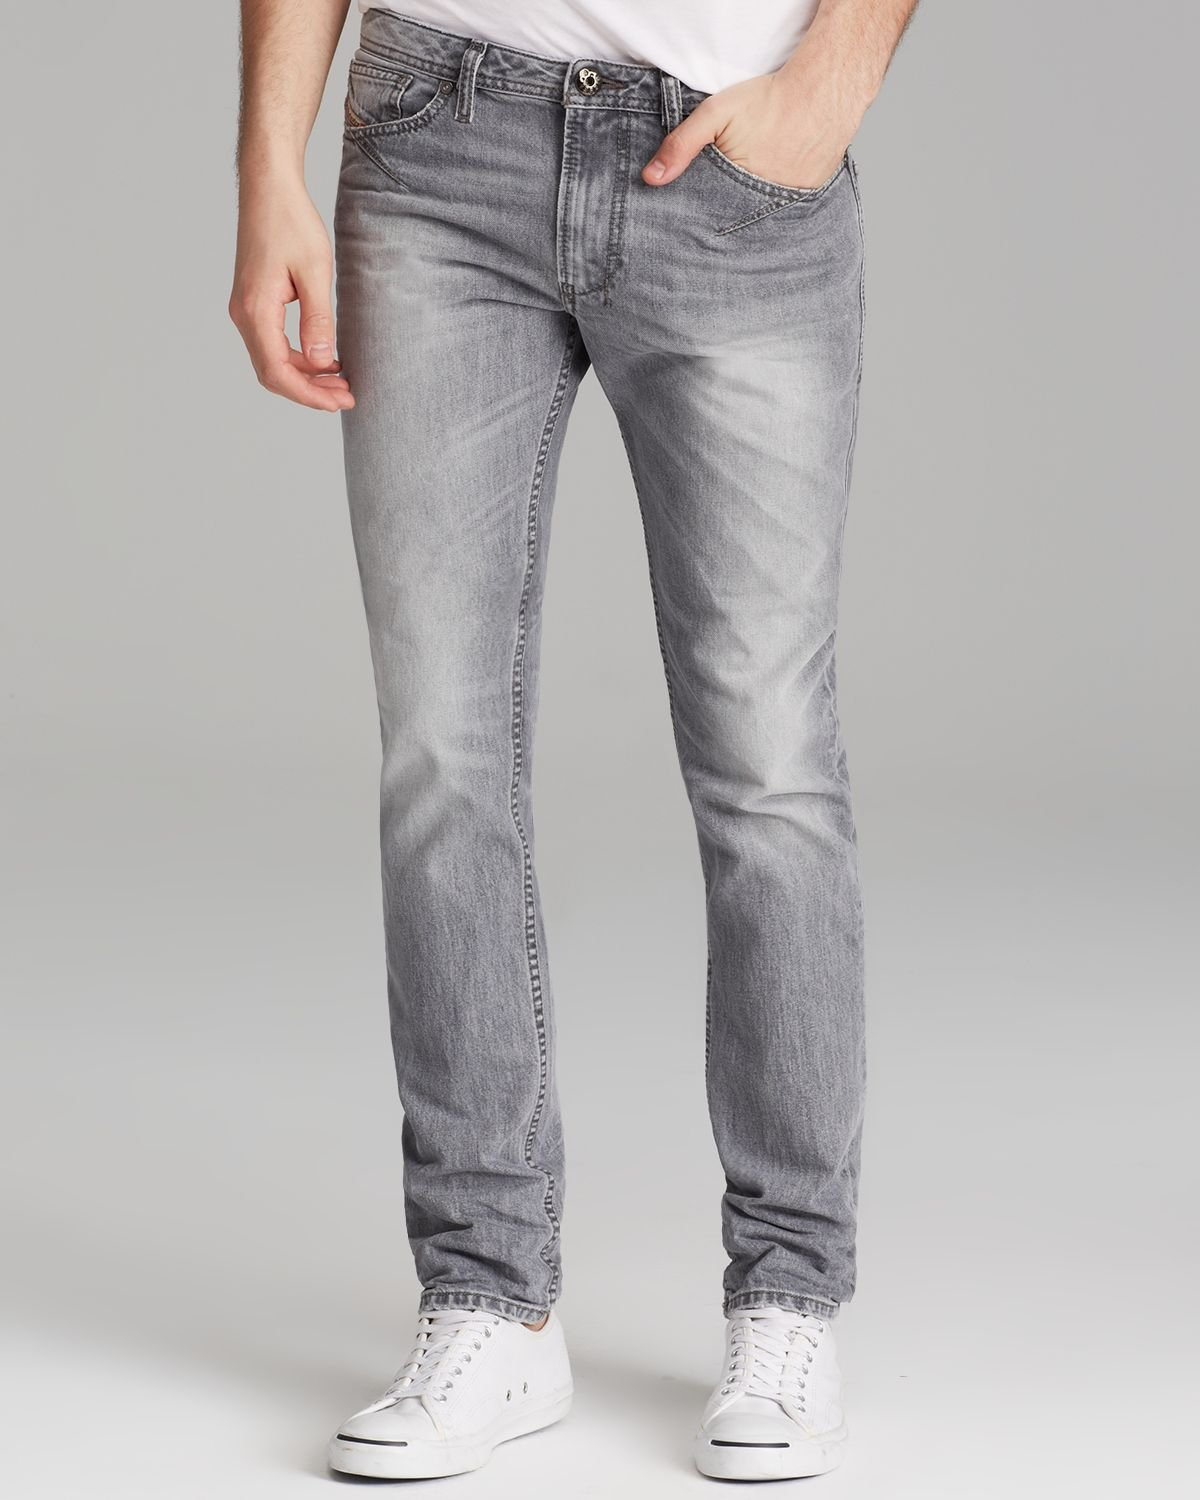 Slim fit jeans are the perfect choice for men who are looking for an all-purpose pair of jeans. Great for almost any occasion, and available in a variety of stretches and washes, you're sure to find a pair of slim fit jeans you'll love.